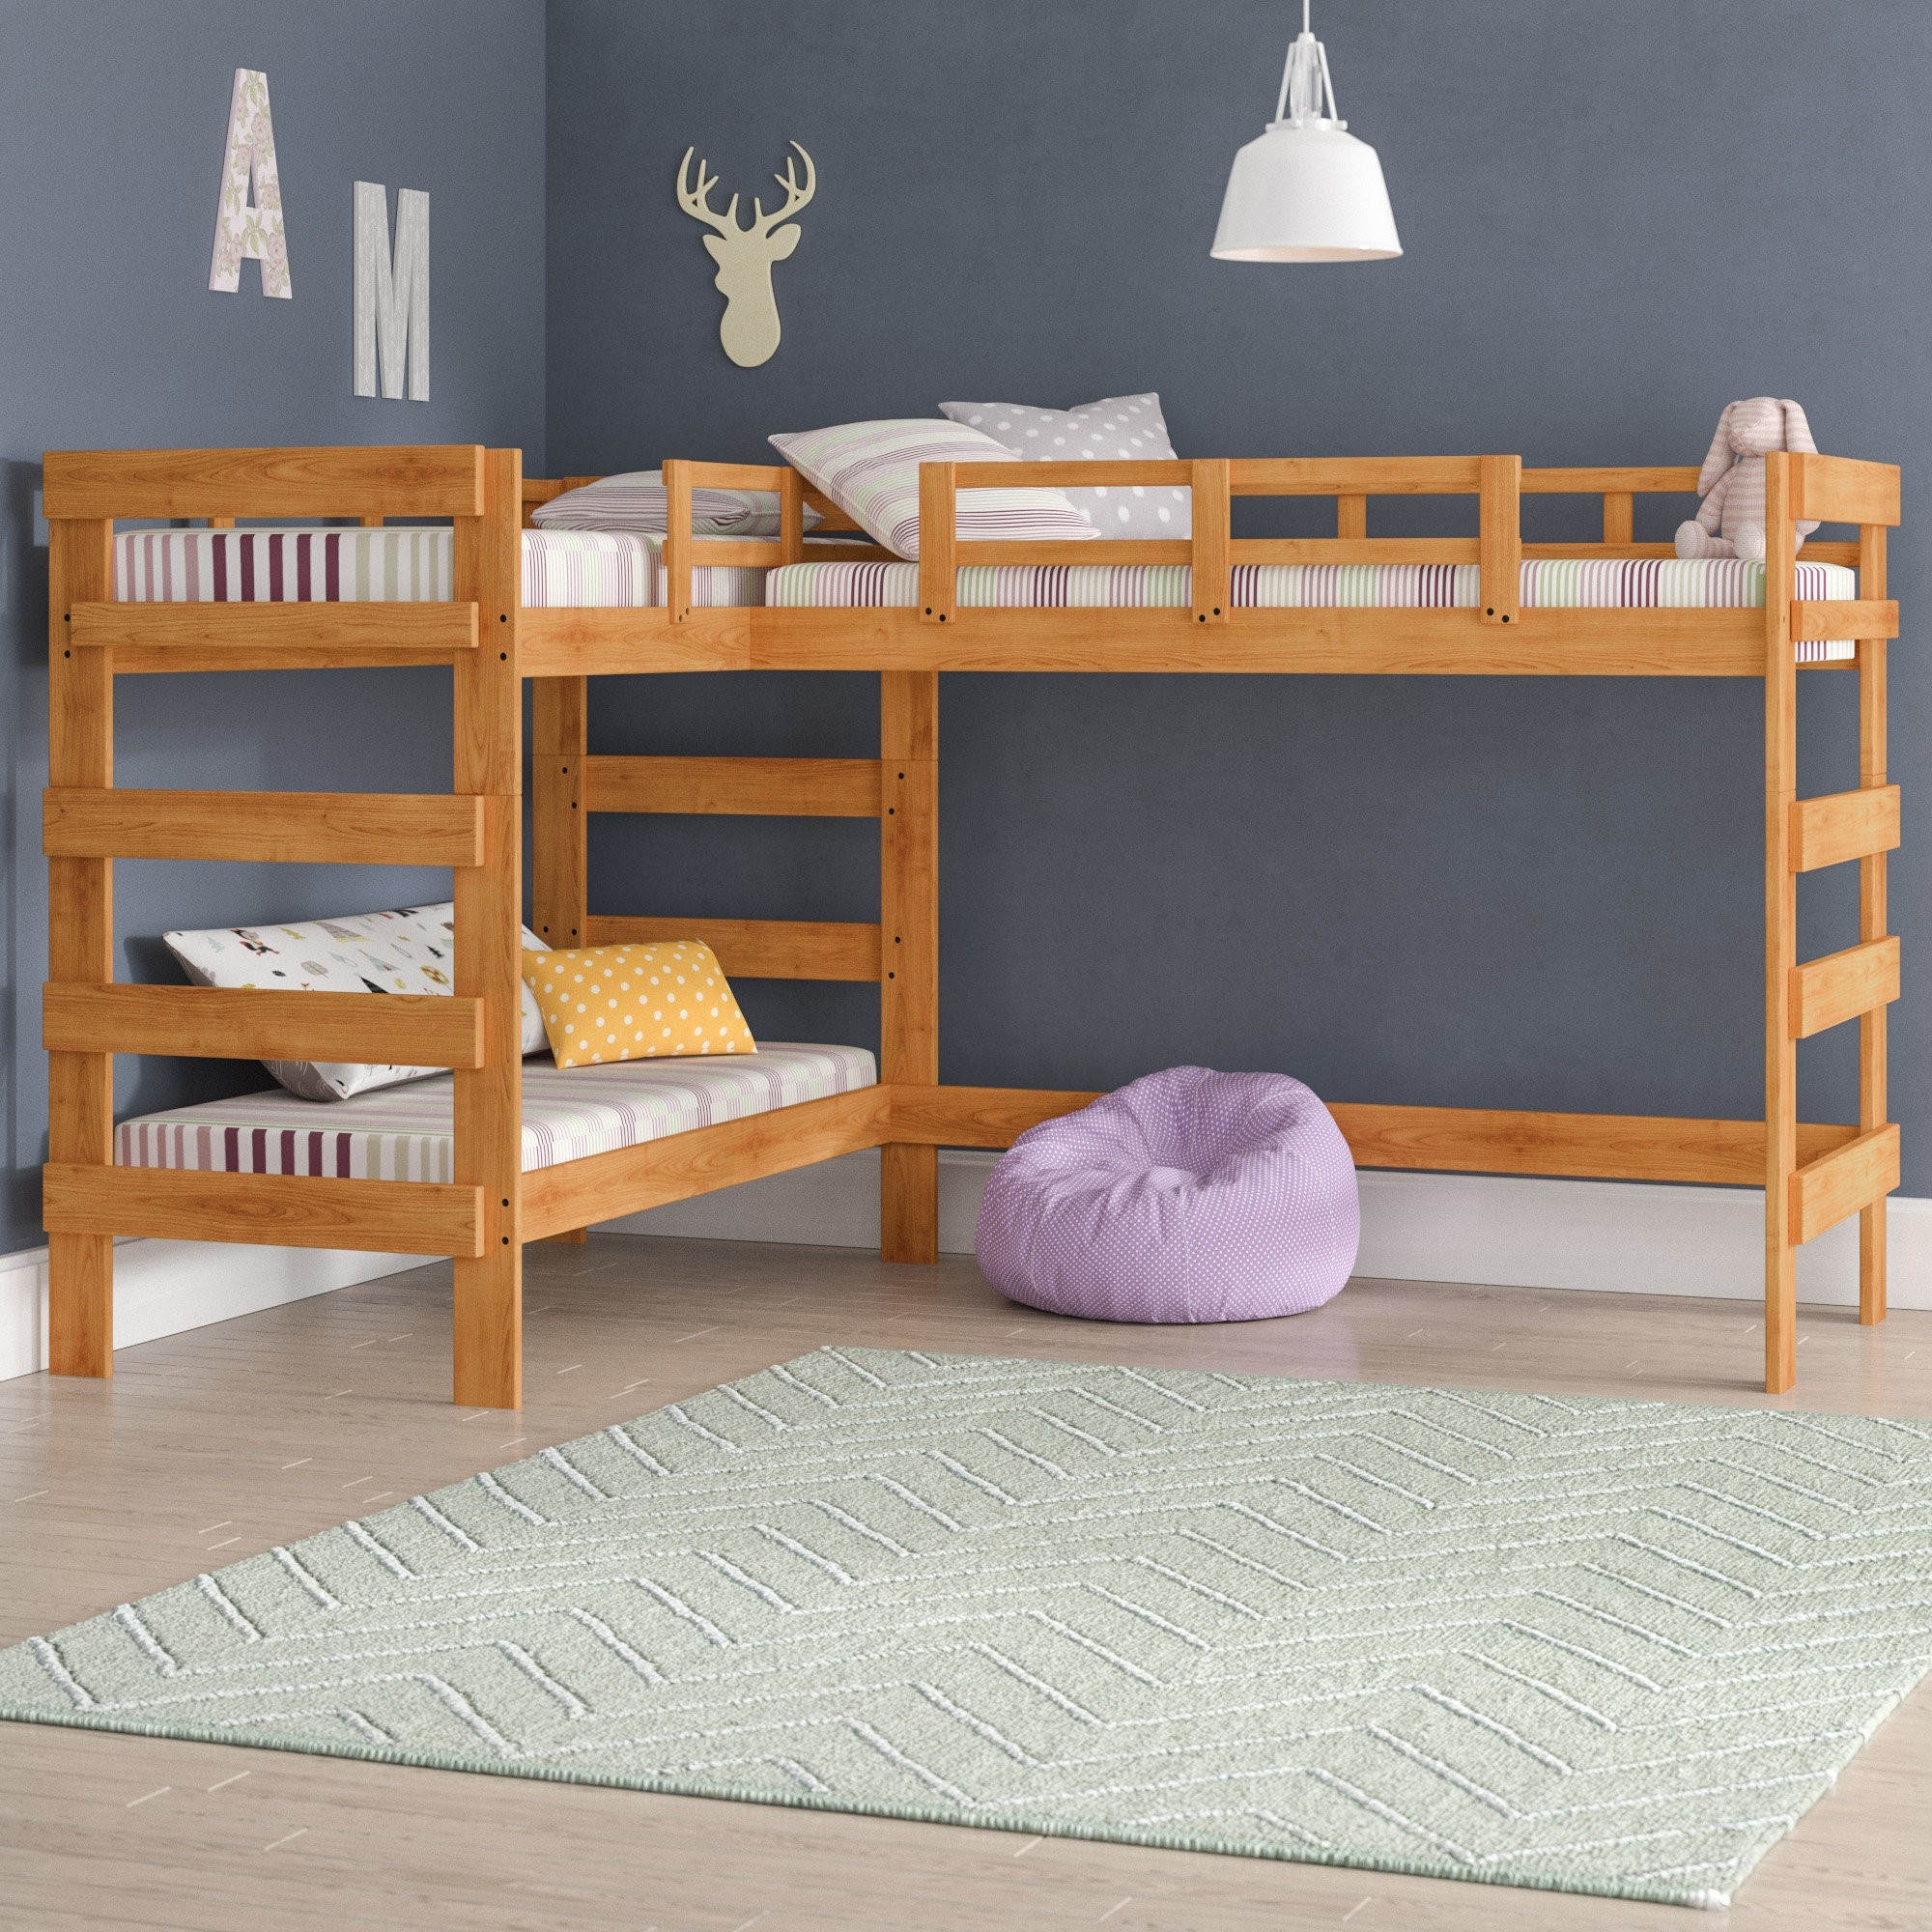 Picture of: Triple Bunk Beds For Kids Ideas On Foter